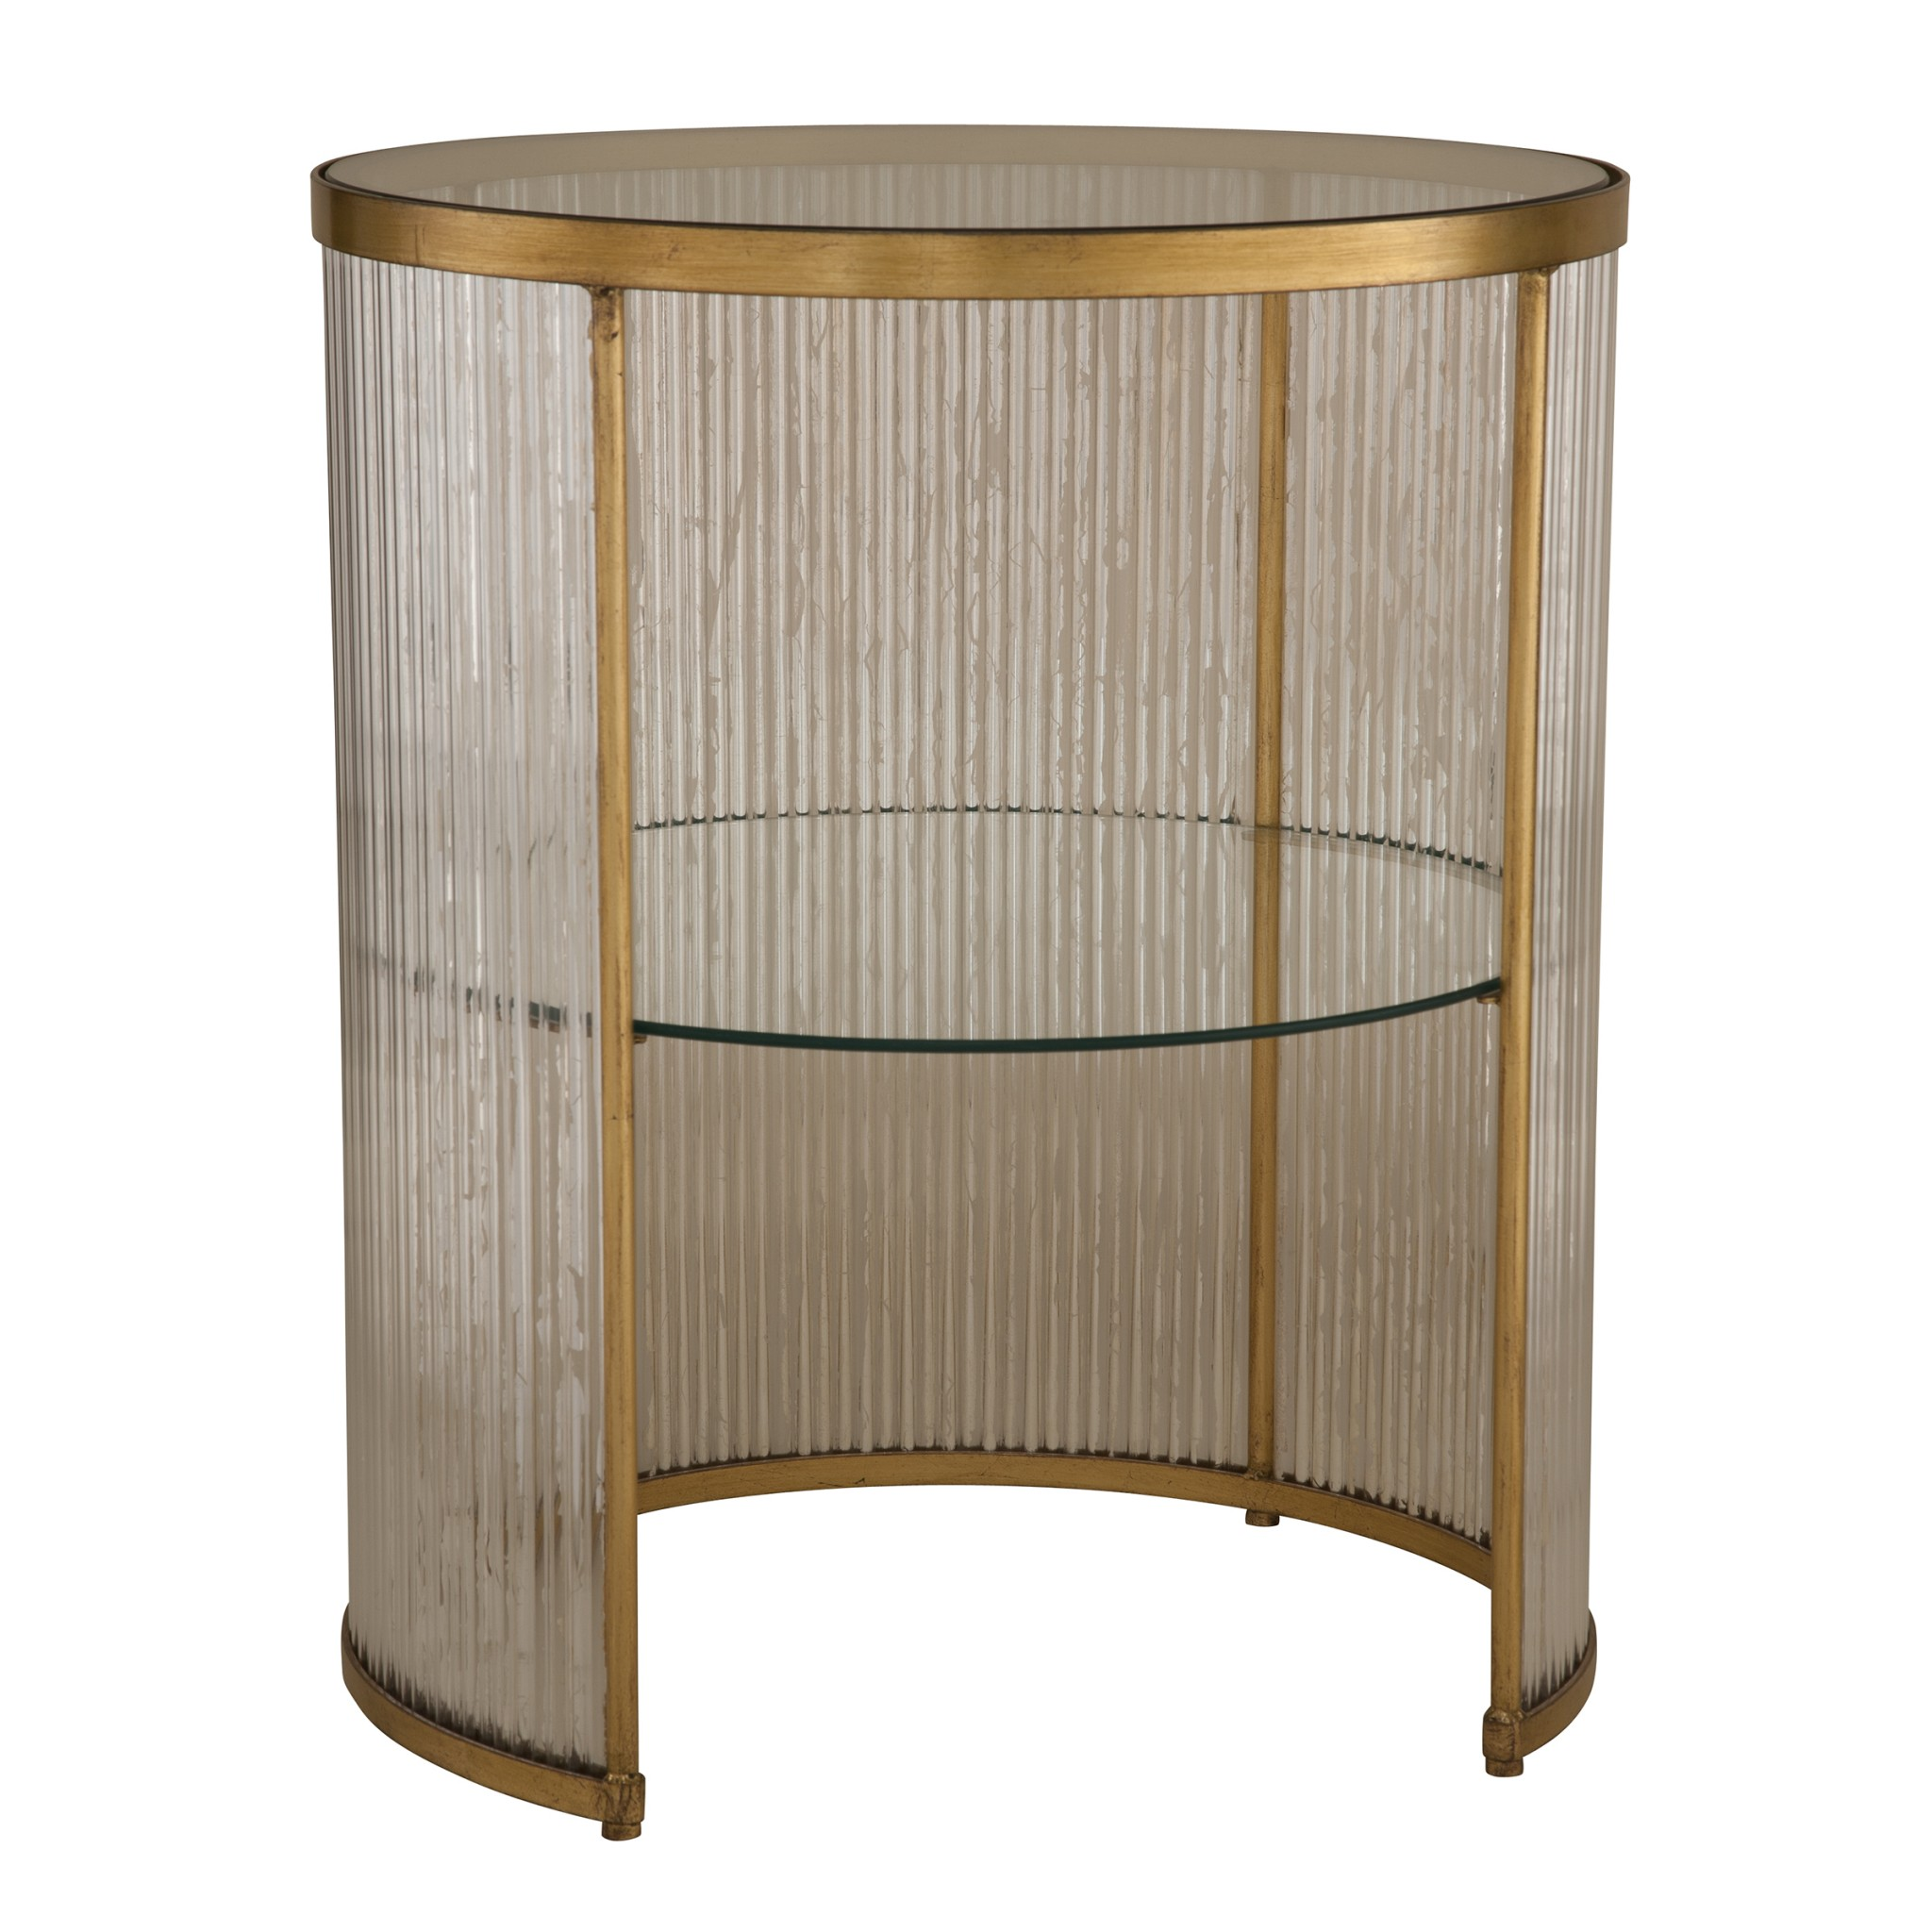 laurin side table niermann weeks round accent glass top marble lamp white living room furniture ideas modern wool rugs bayside ethan allen outdoor dining chairs edmonton with